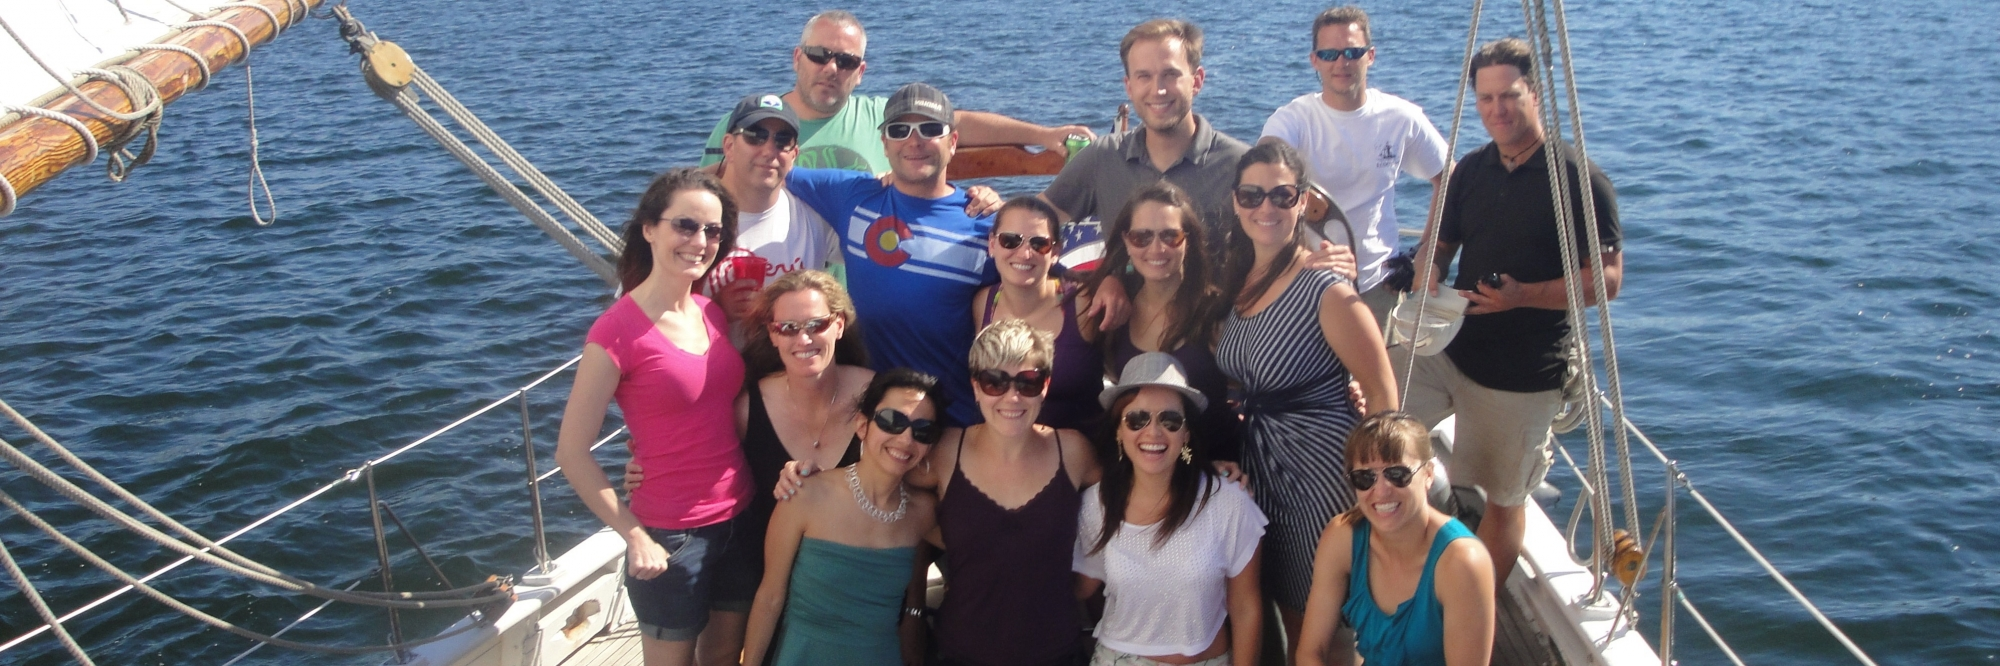 Southern Explorations team on a sail boat